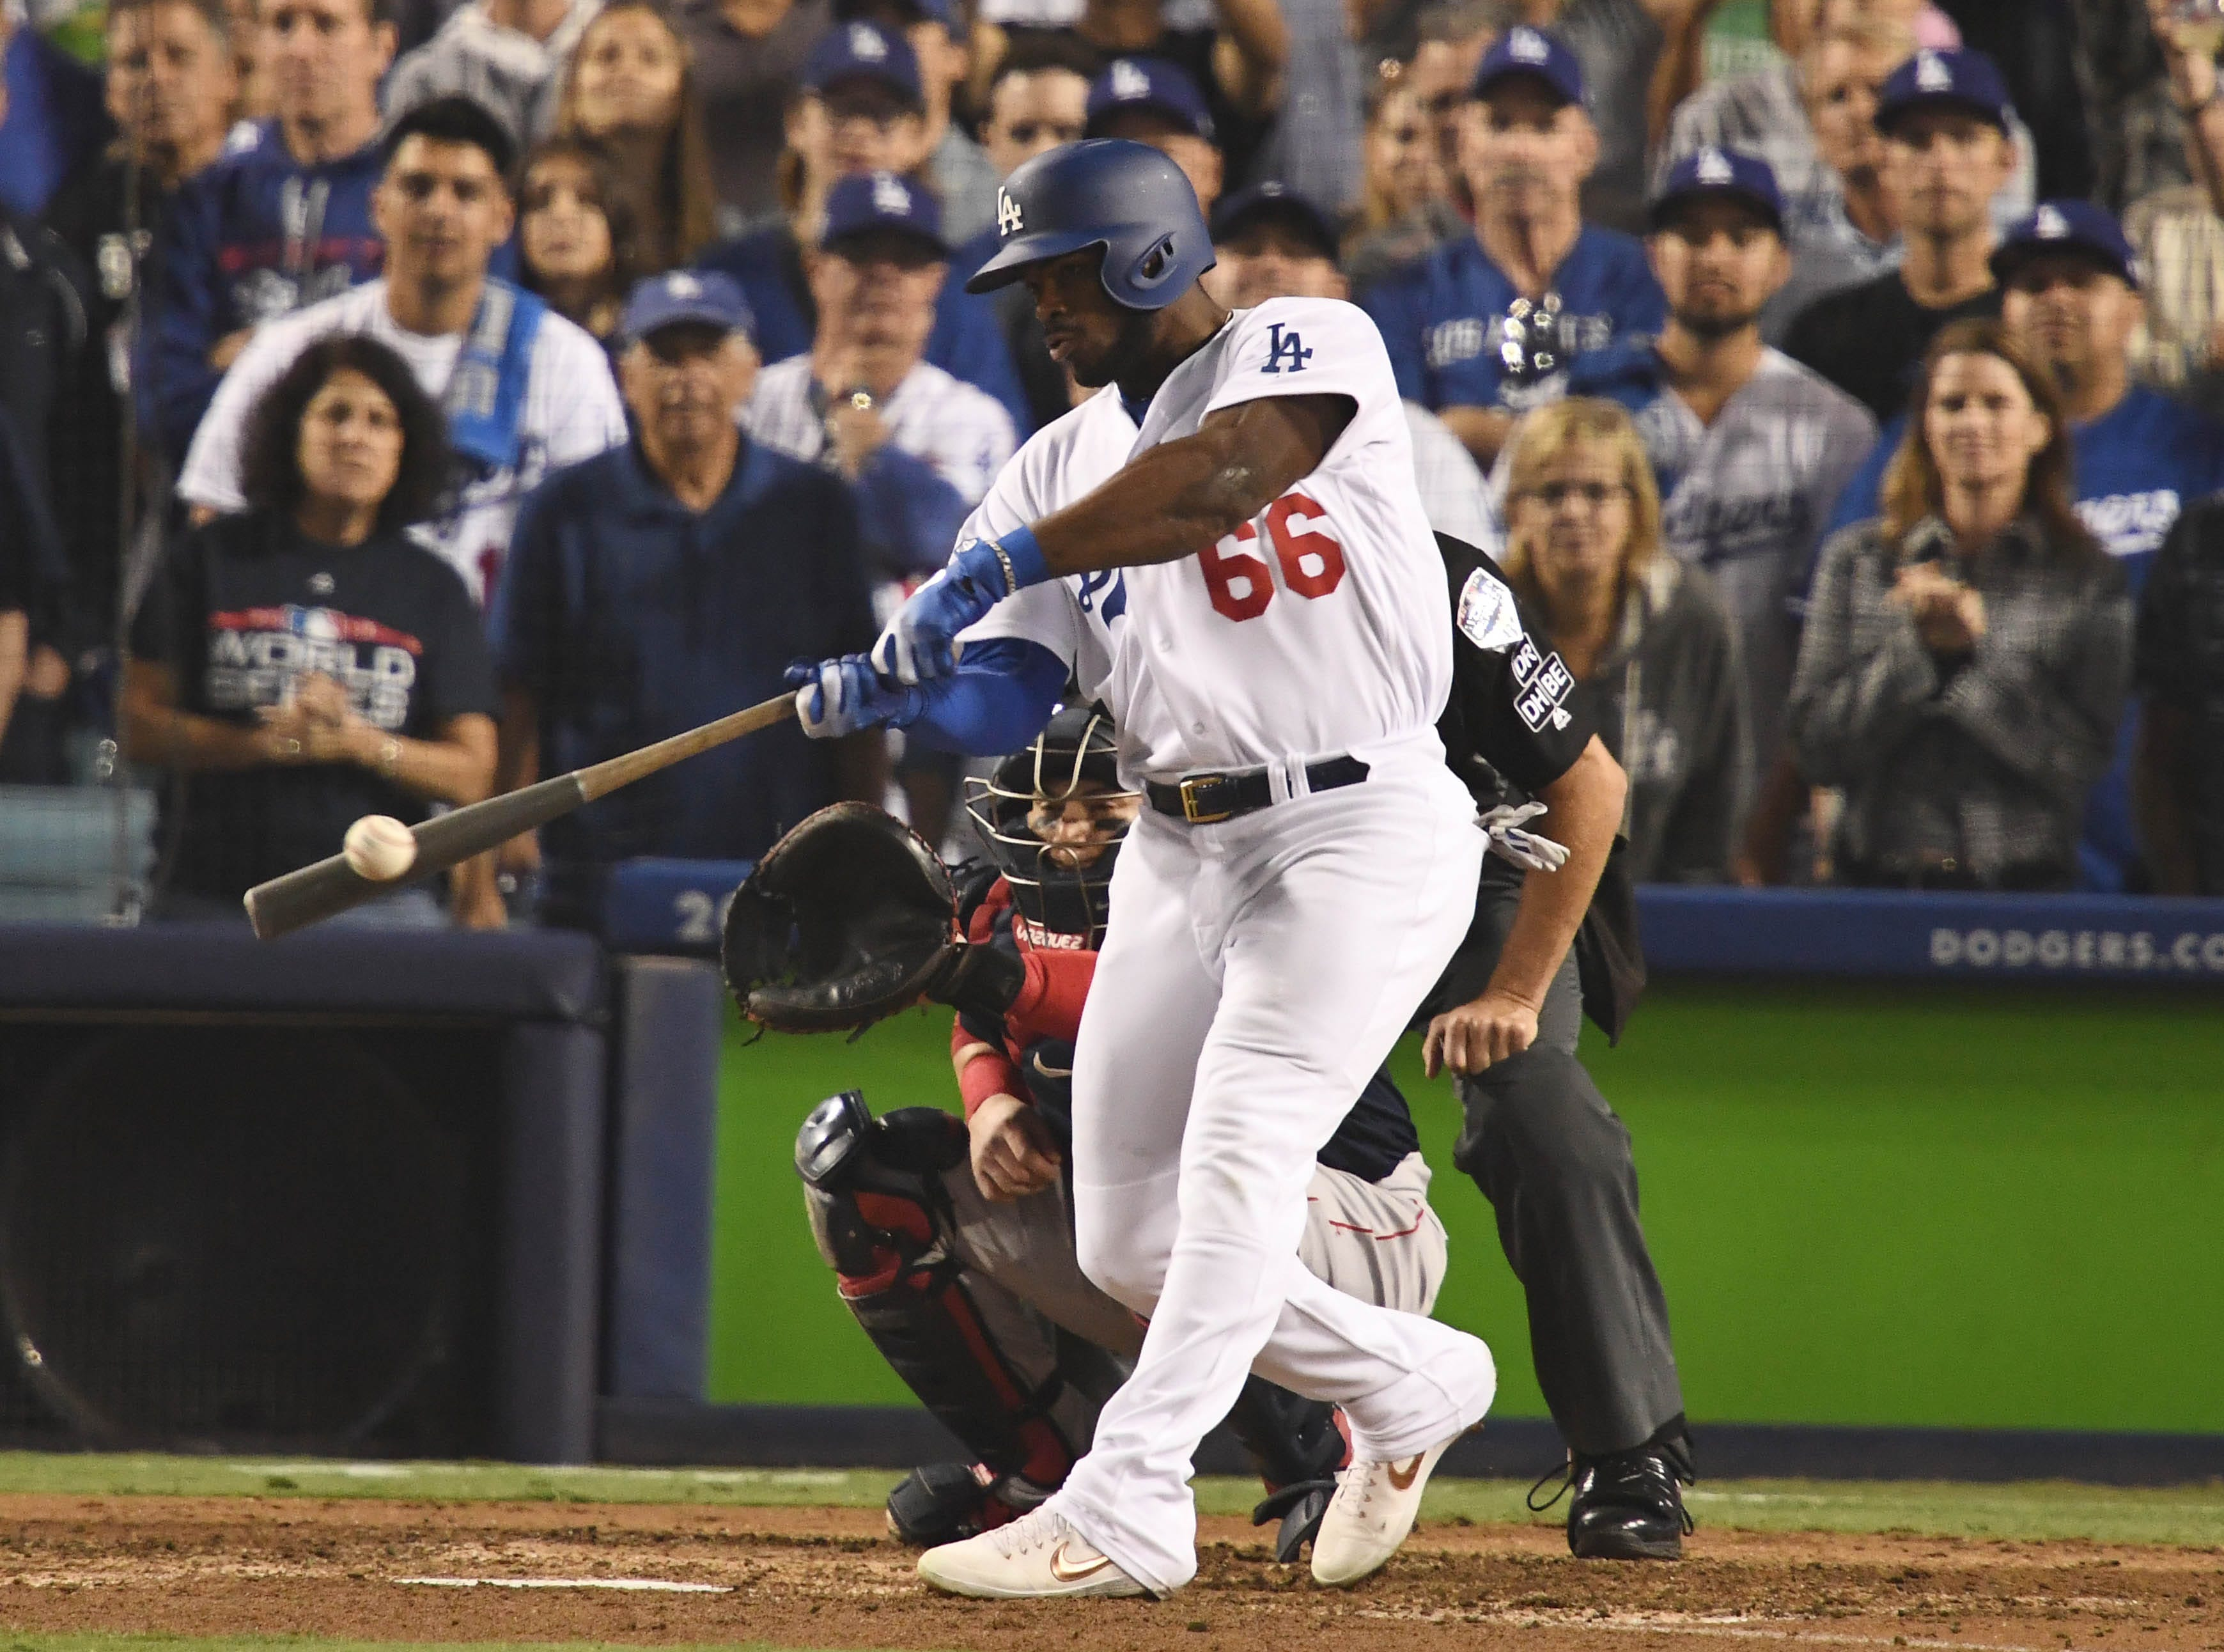 Game 4 at Dodger Stadium: Yasiel Puig hits a three-run homer in the sixth inning.